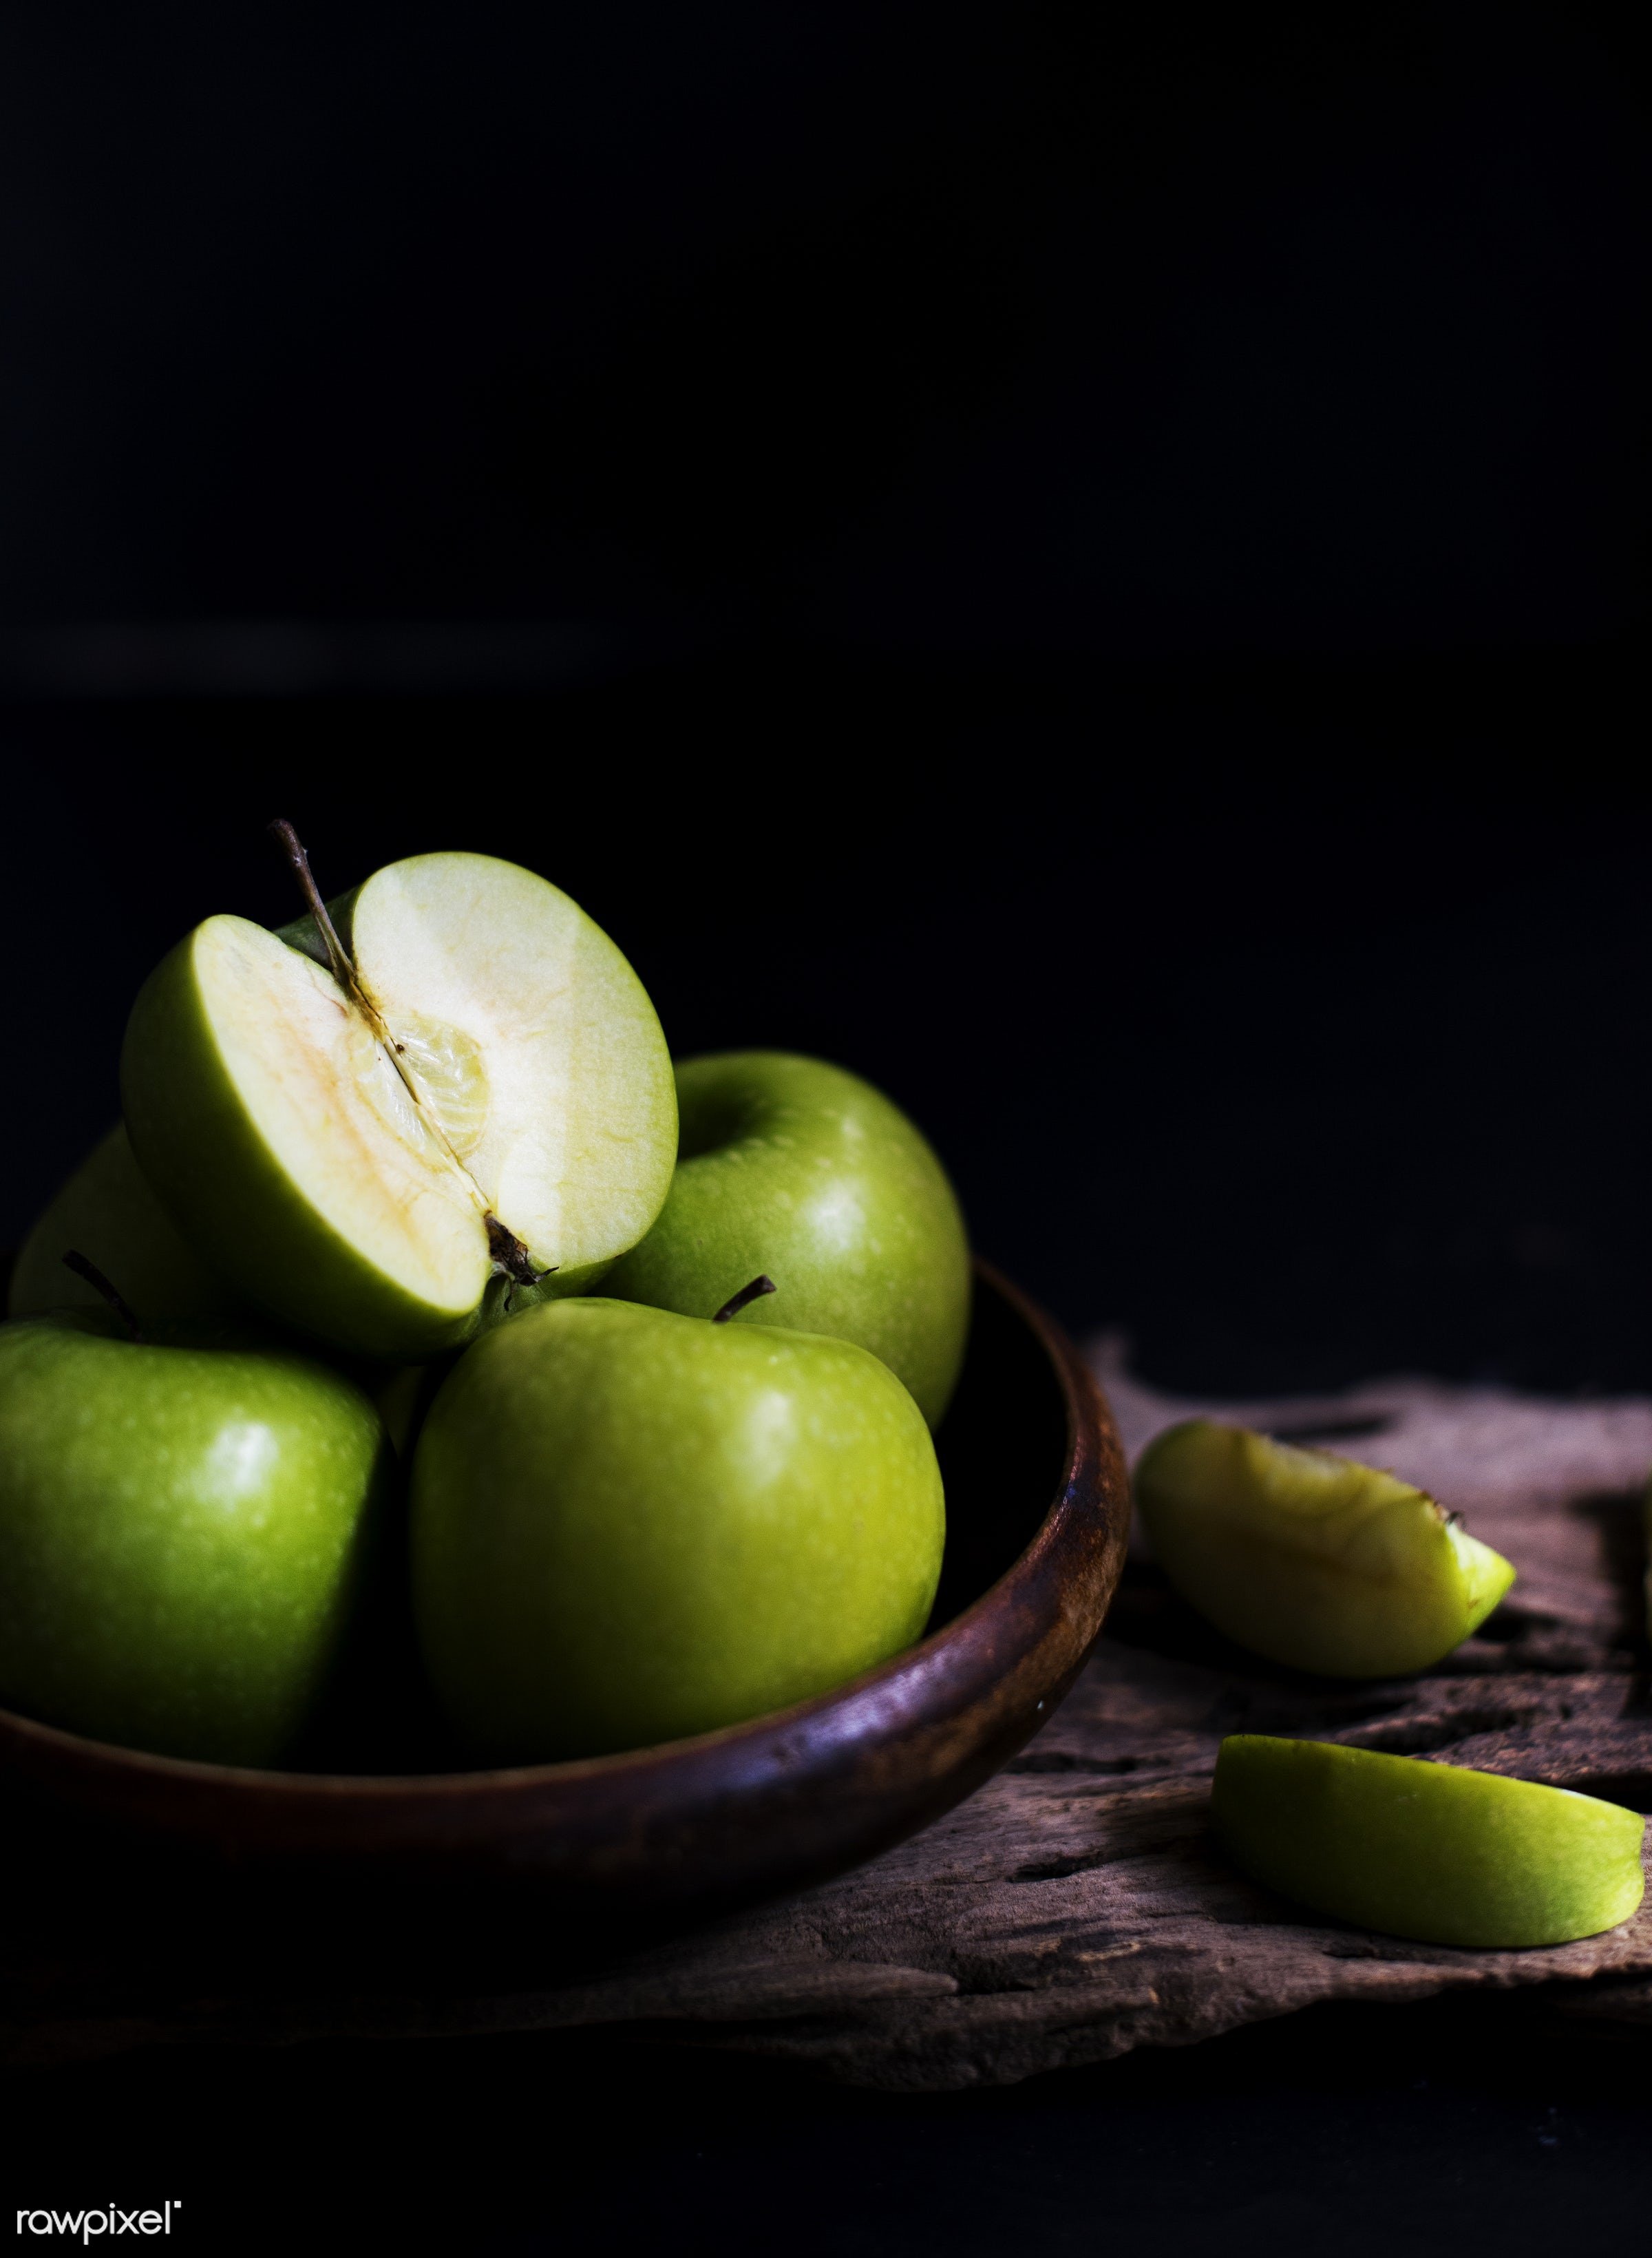 raw, nobody, black background, nature, fresh, apples, products, closeup, fruit, green, agriculture, wooden bowl, organic,...